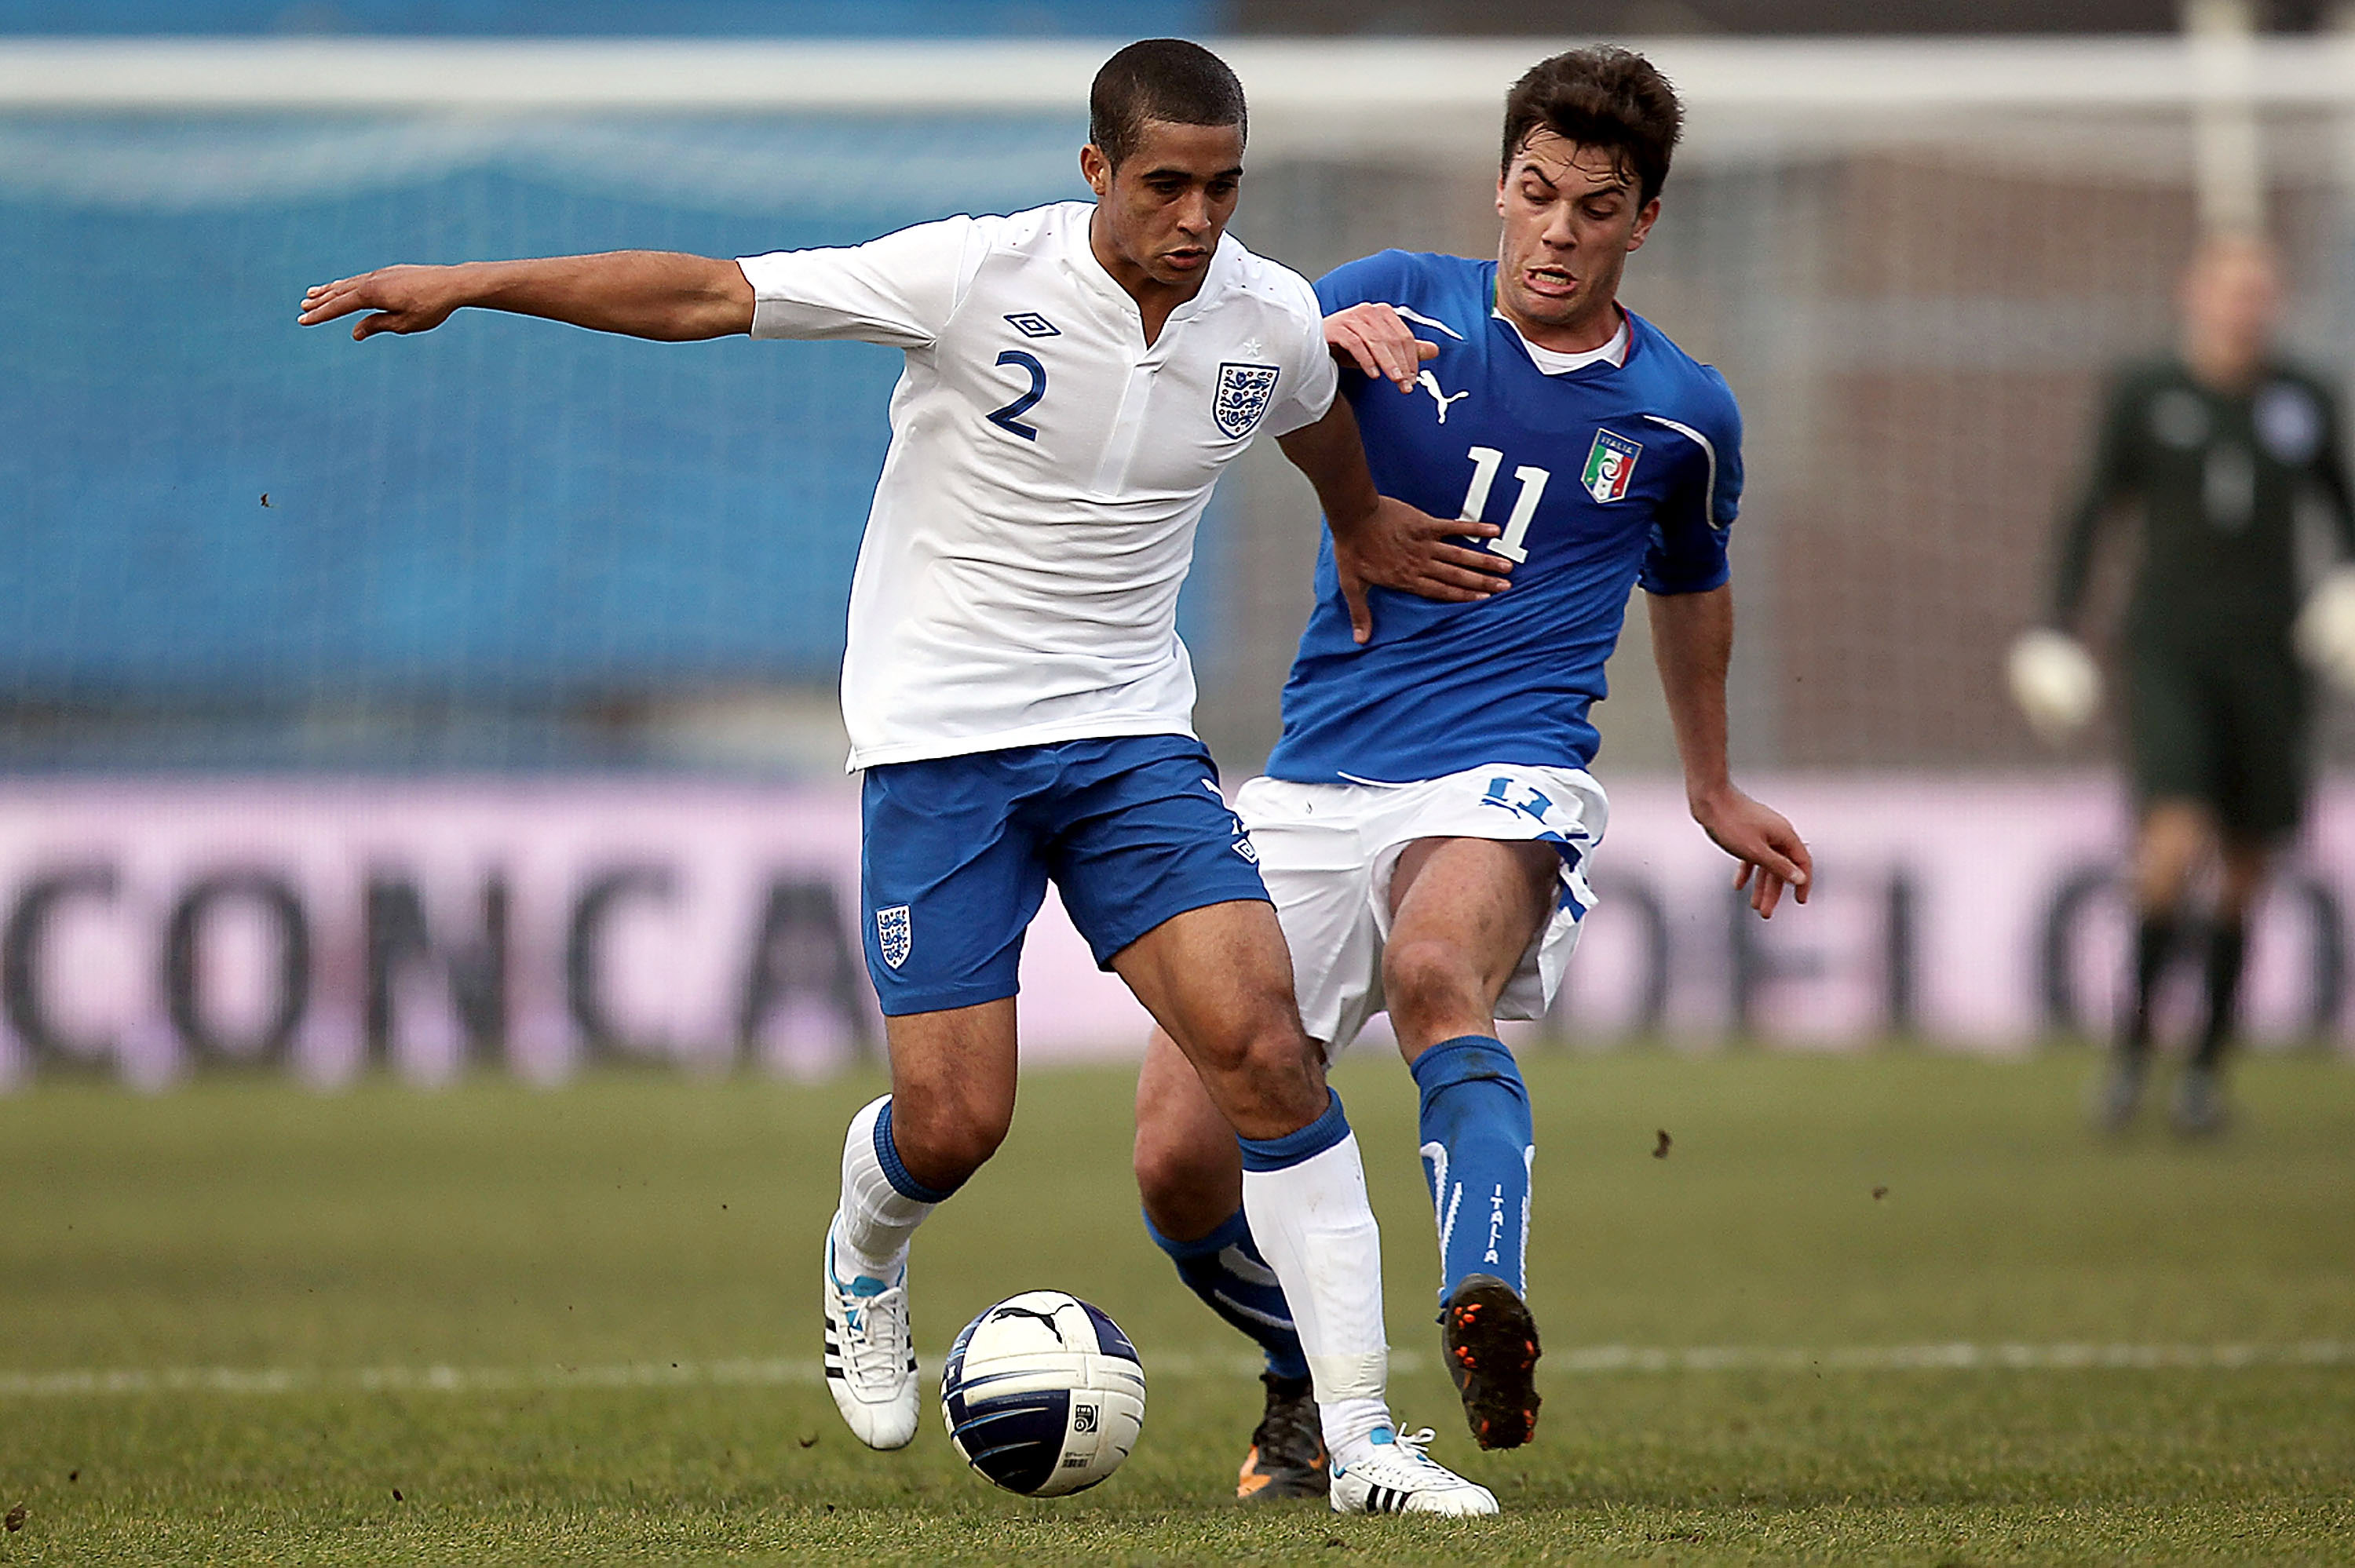 EMPOLI, ITALY - FEBRUARY 08: Gianvito Misuraca of Italy fights for the ball with Kyle Naughton of England during the international friendly match between Italy U21 and England U21 at Stadio Carlo Castellani on February 8, 2011 in Empoli, Italy.  (Photo by